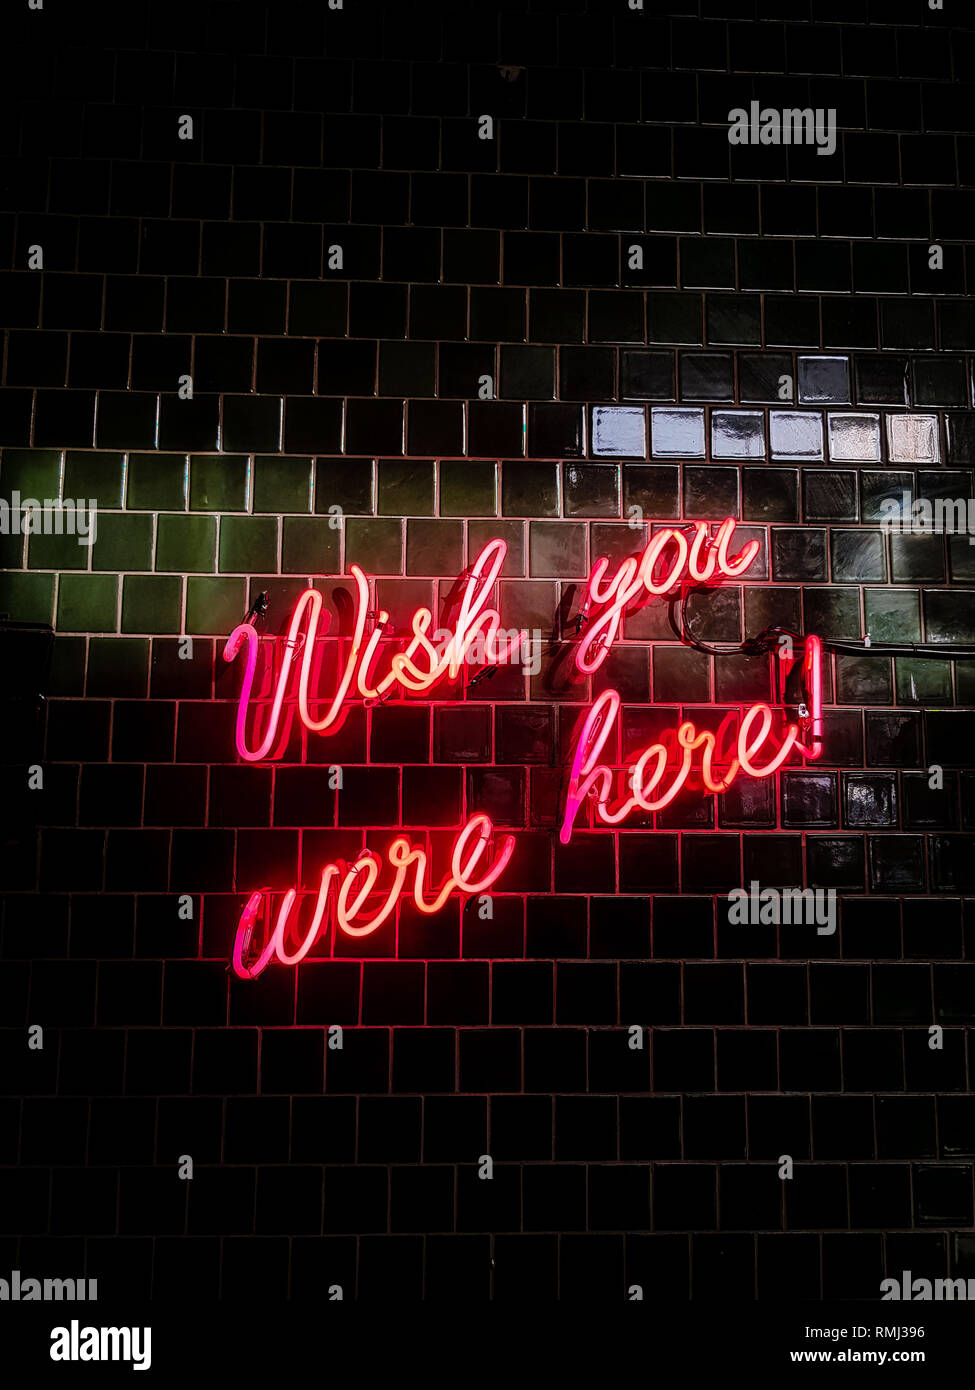 80's styled red neon text